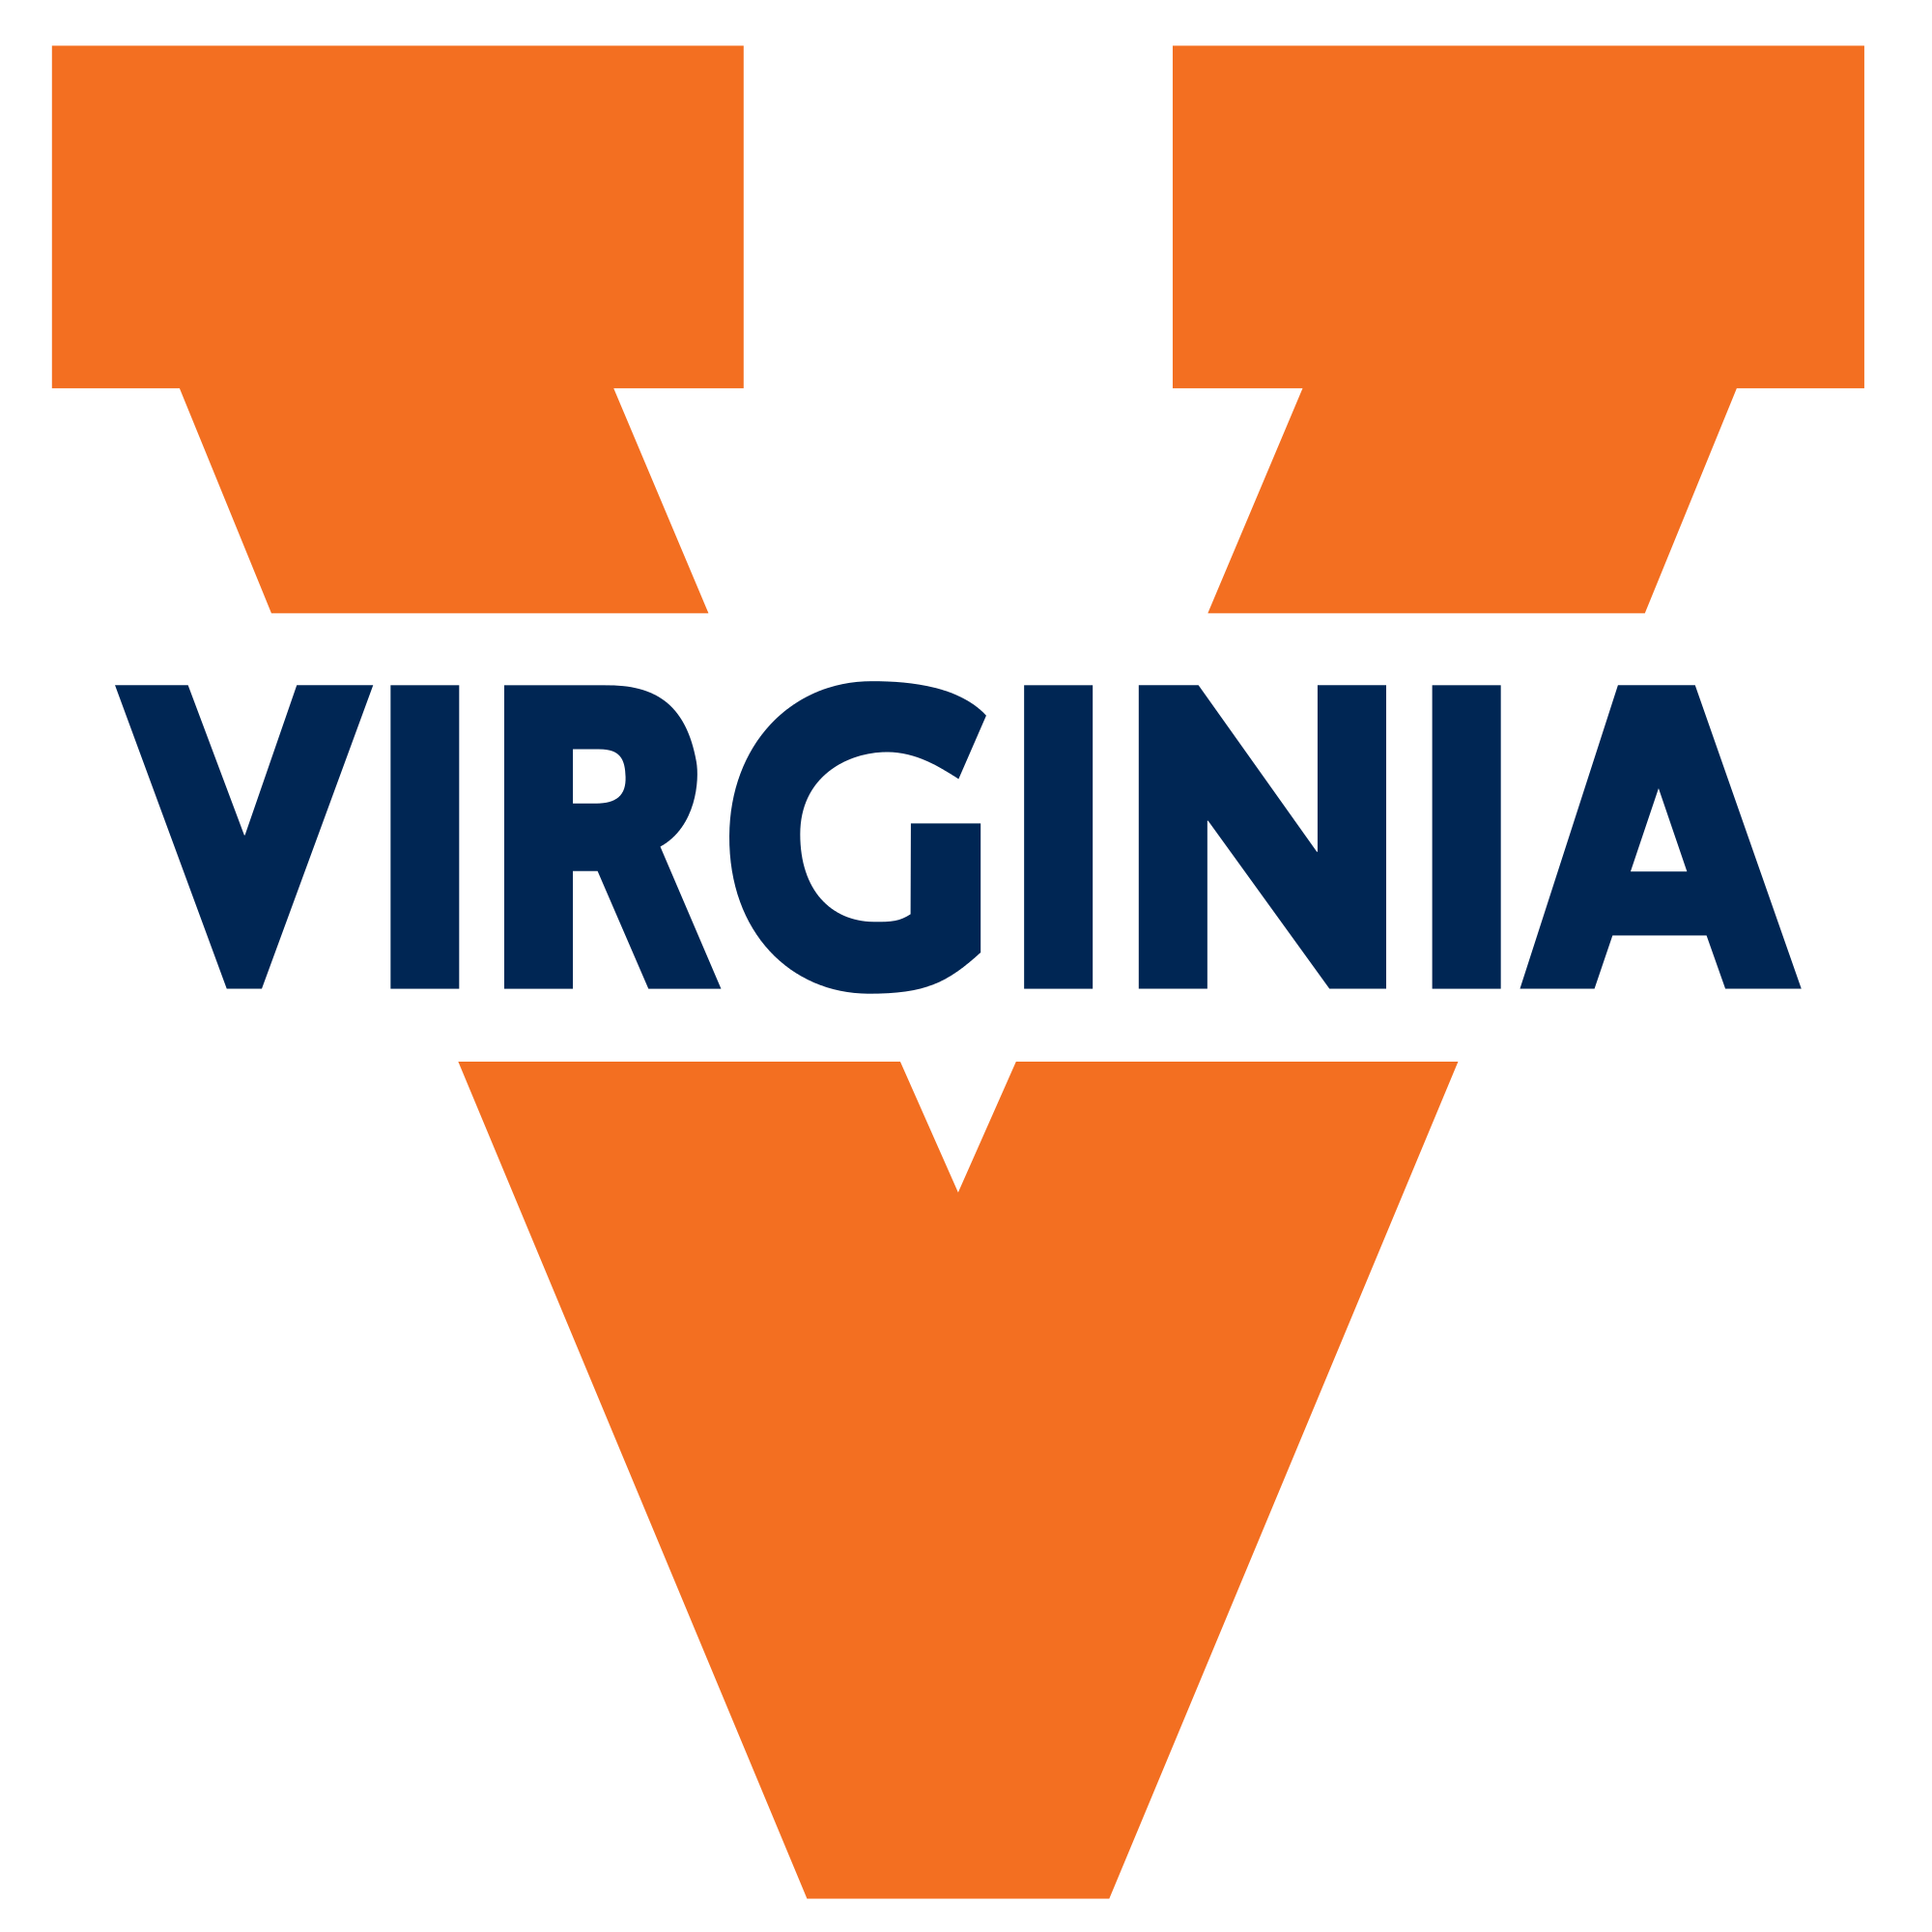 University_of_Virginia_text_logo.svg